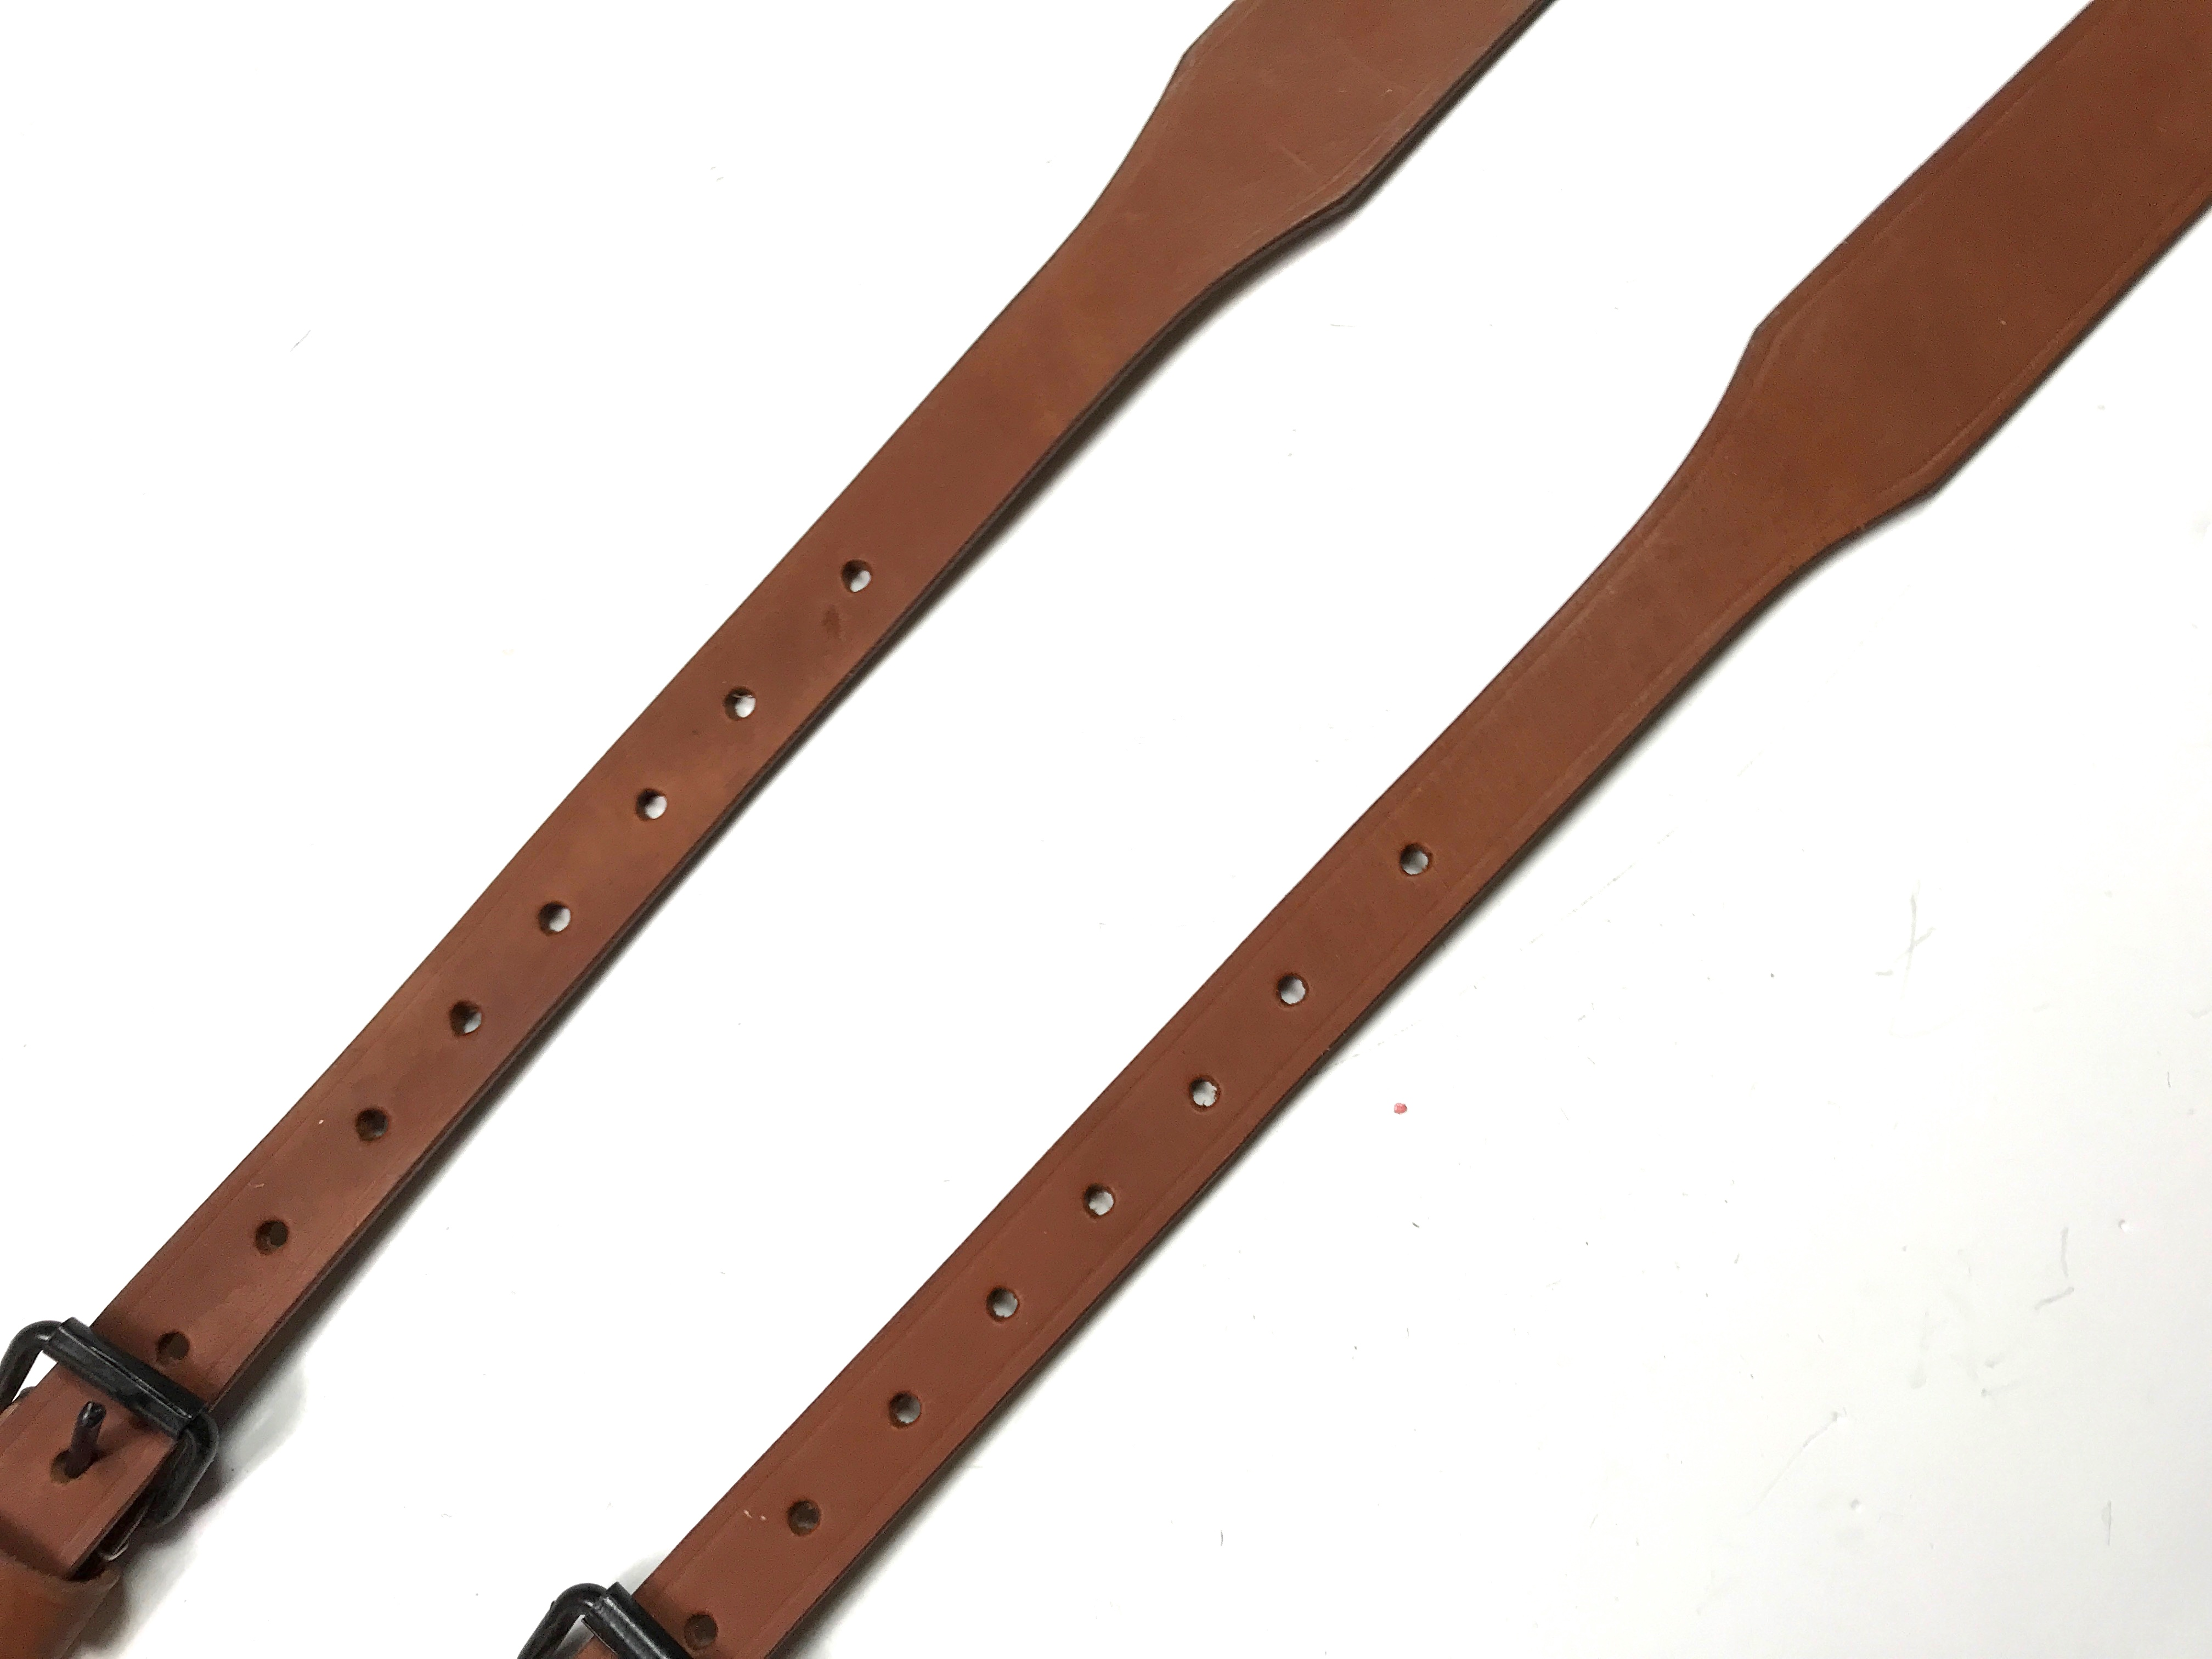 MG34 MG42 LAFETTE TRIPOD LEATHER CARRY STRAPS